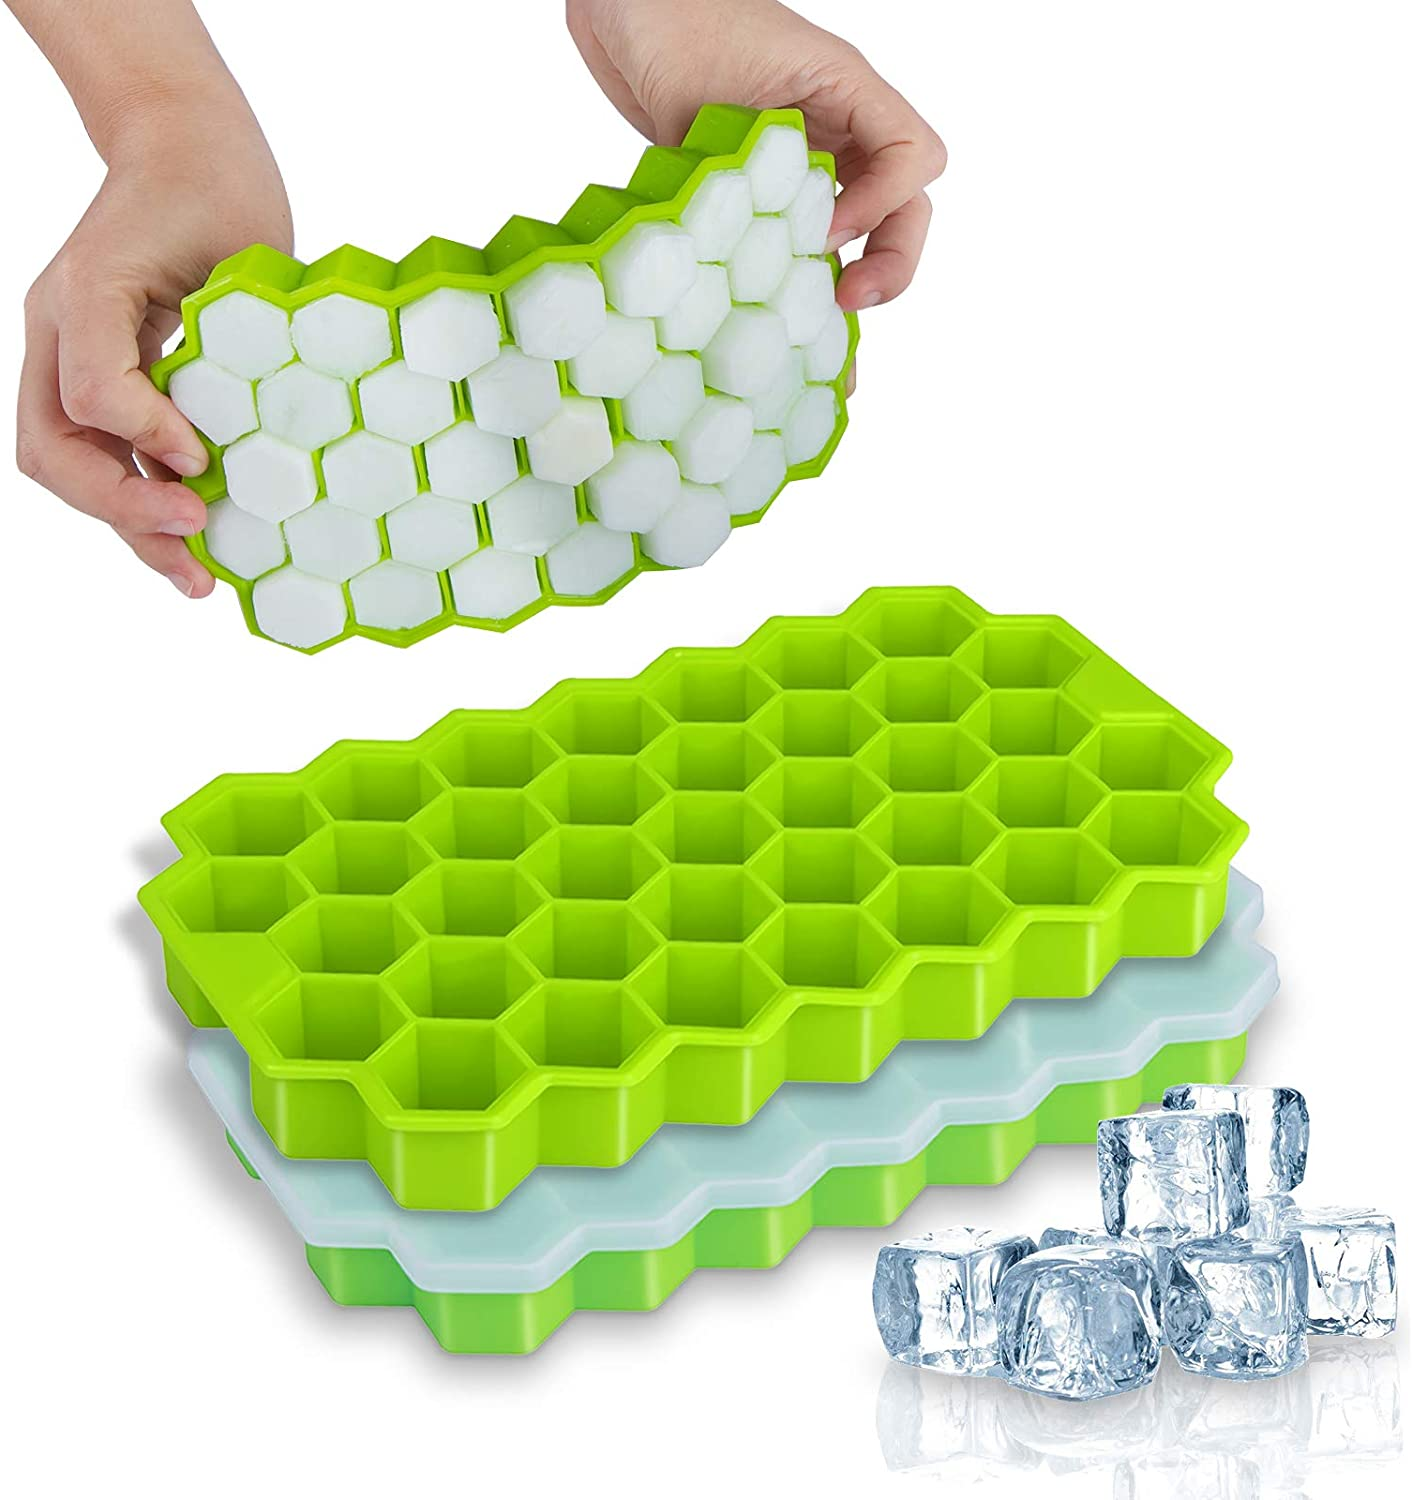 2021 Amazon Hot Sale 37 Grids Honeycomb Silicone Ice Cream Mold Tray with Silicone Lids for Cocktail, Freezer